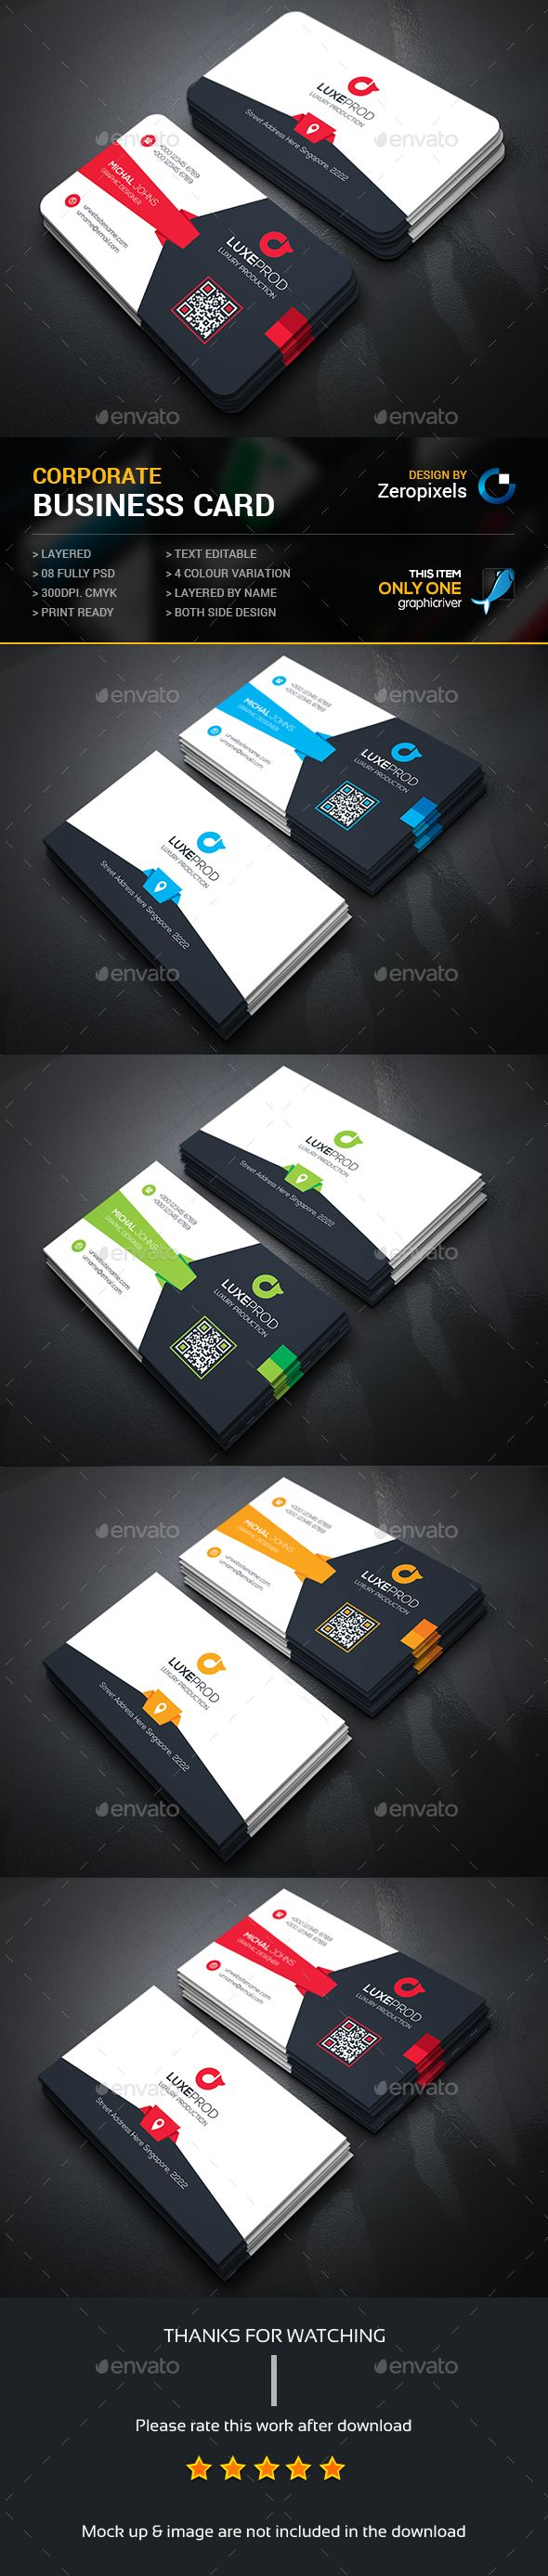 102 best business card design images on pinterest business card buy corporate business card by zeropixels on graphicriver features easy customizable and editable business card in with bleed cmyk color design in 300 dpi reheart Image collections